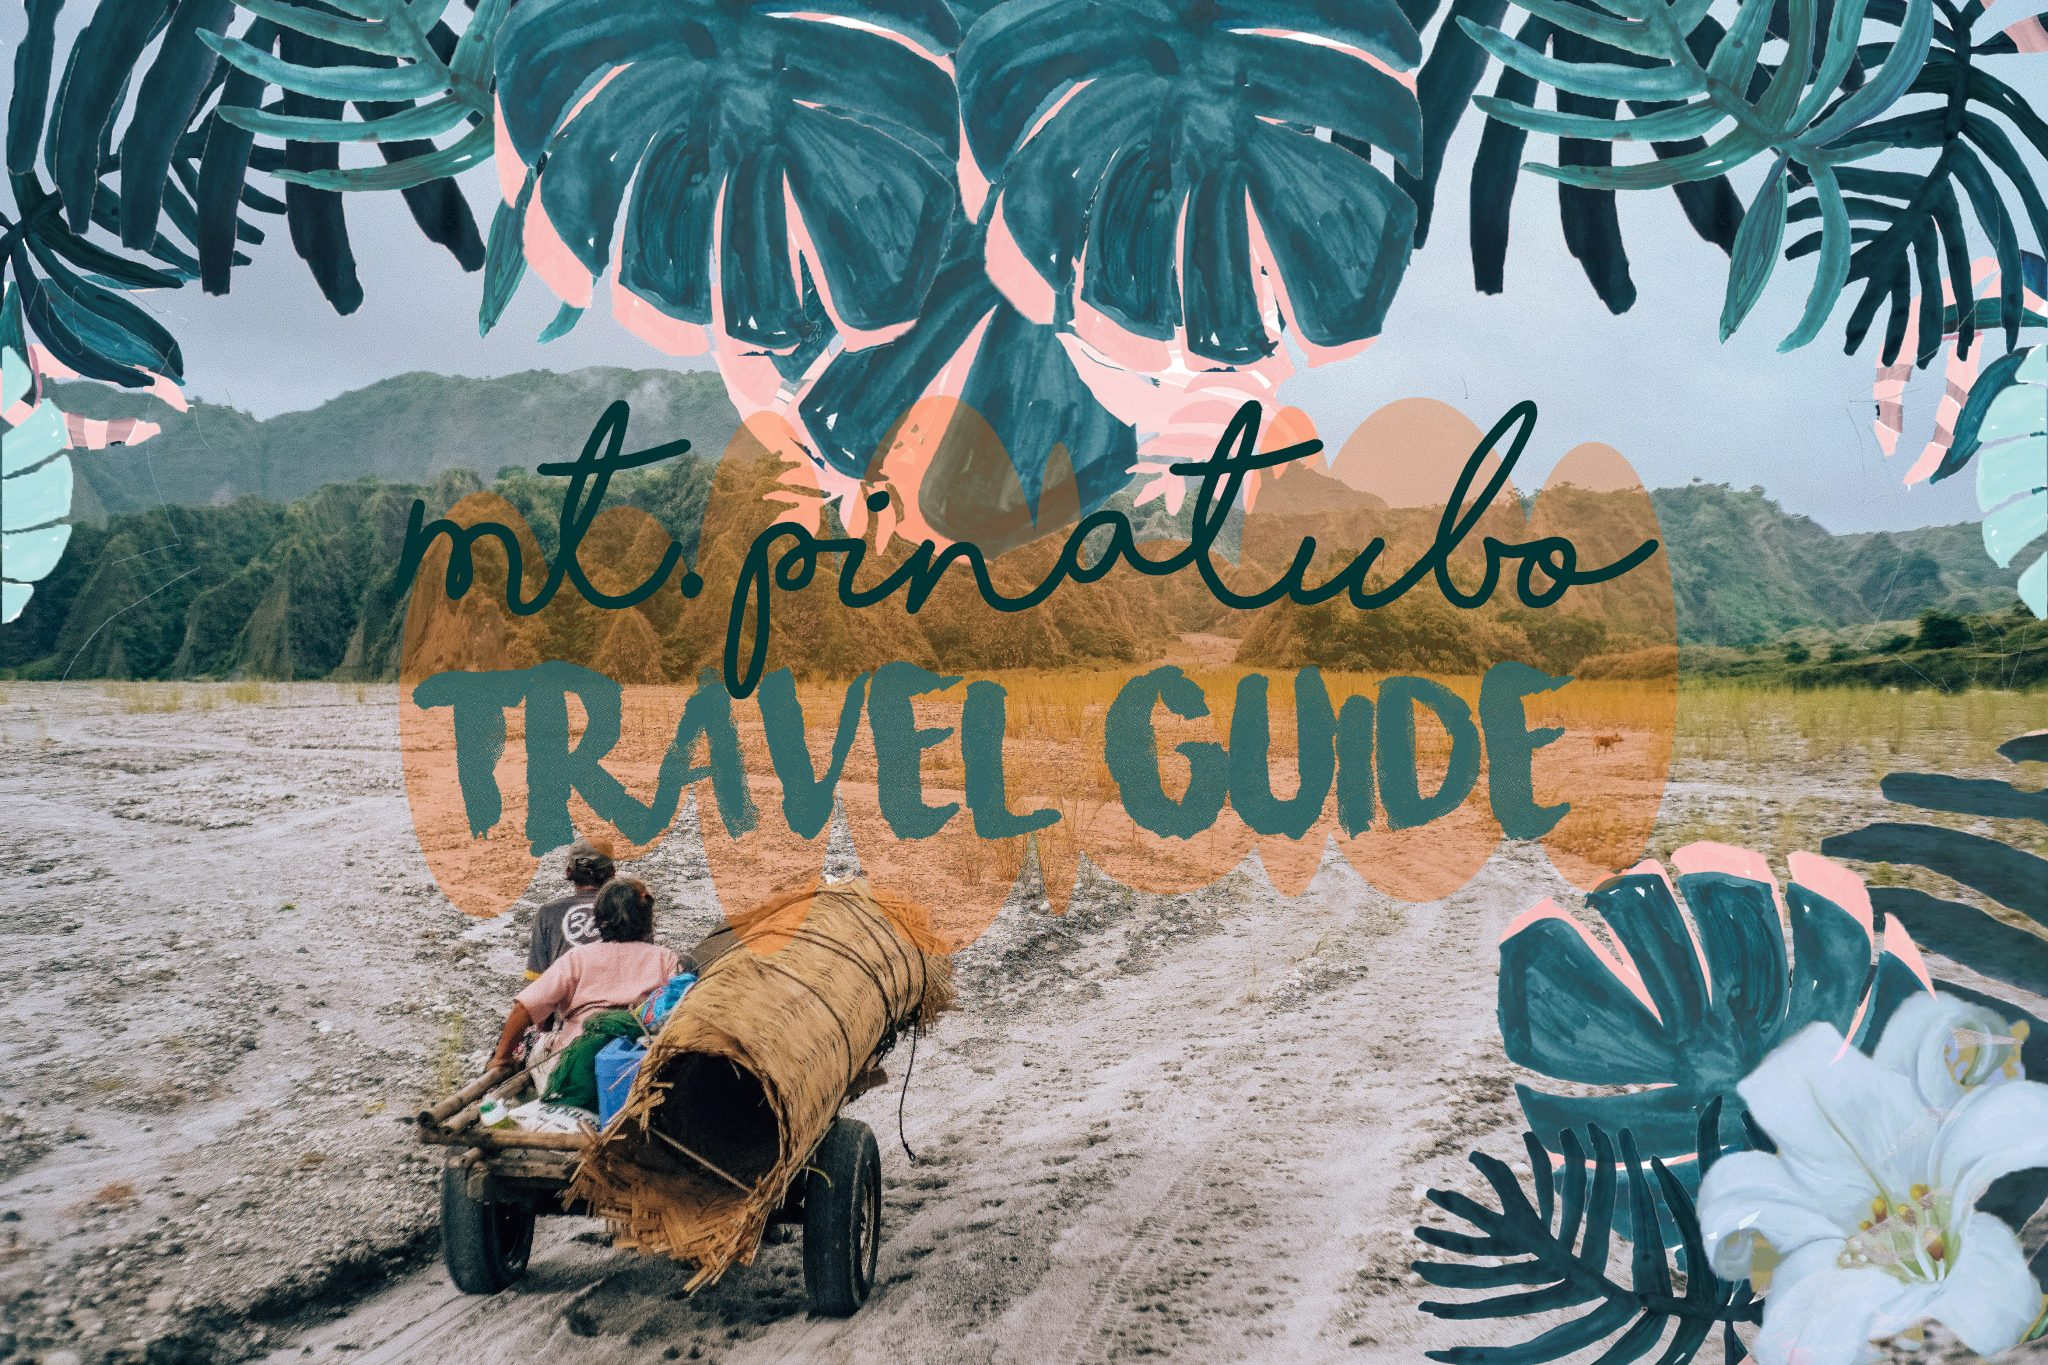 Mt. Pinatubo Travel Guide